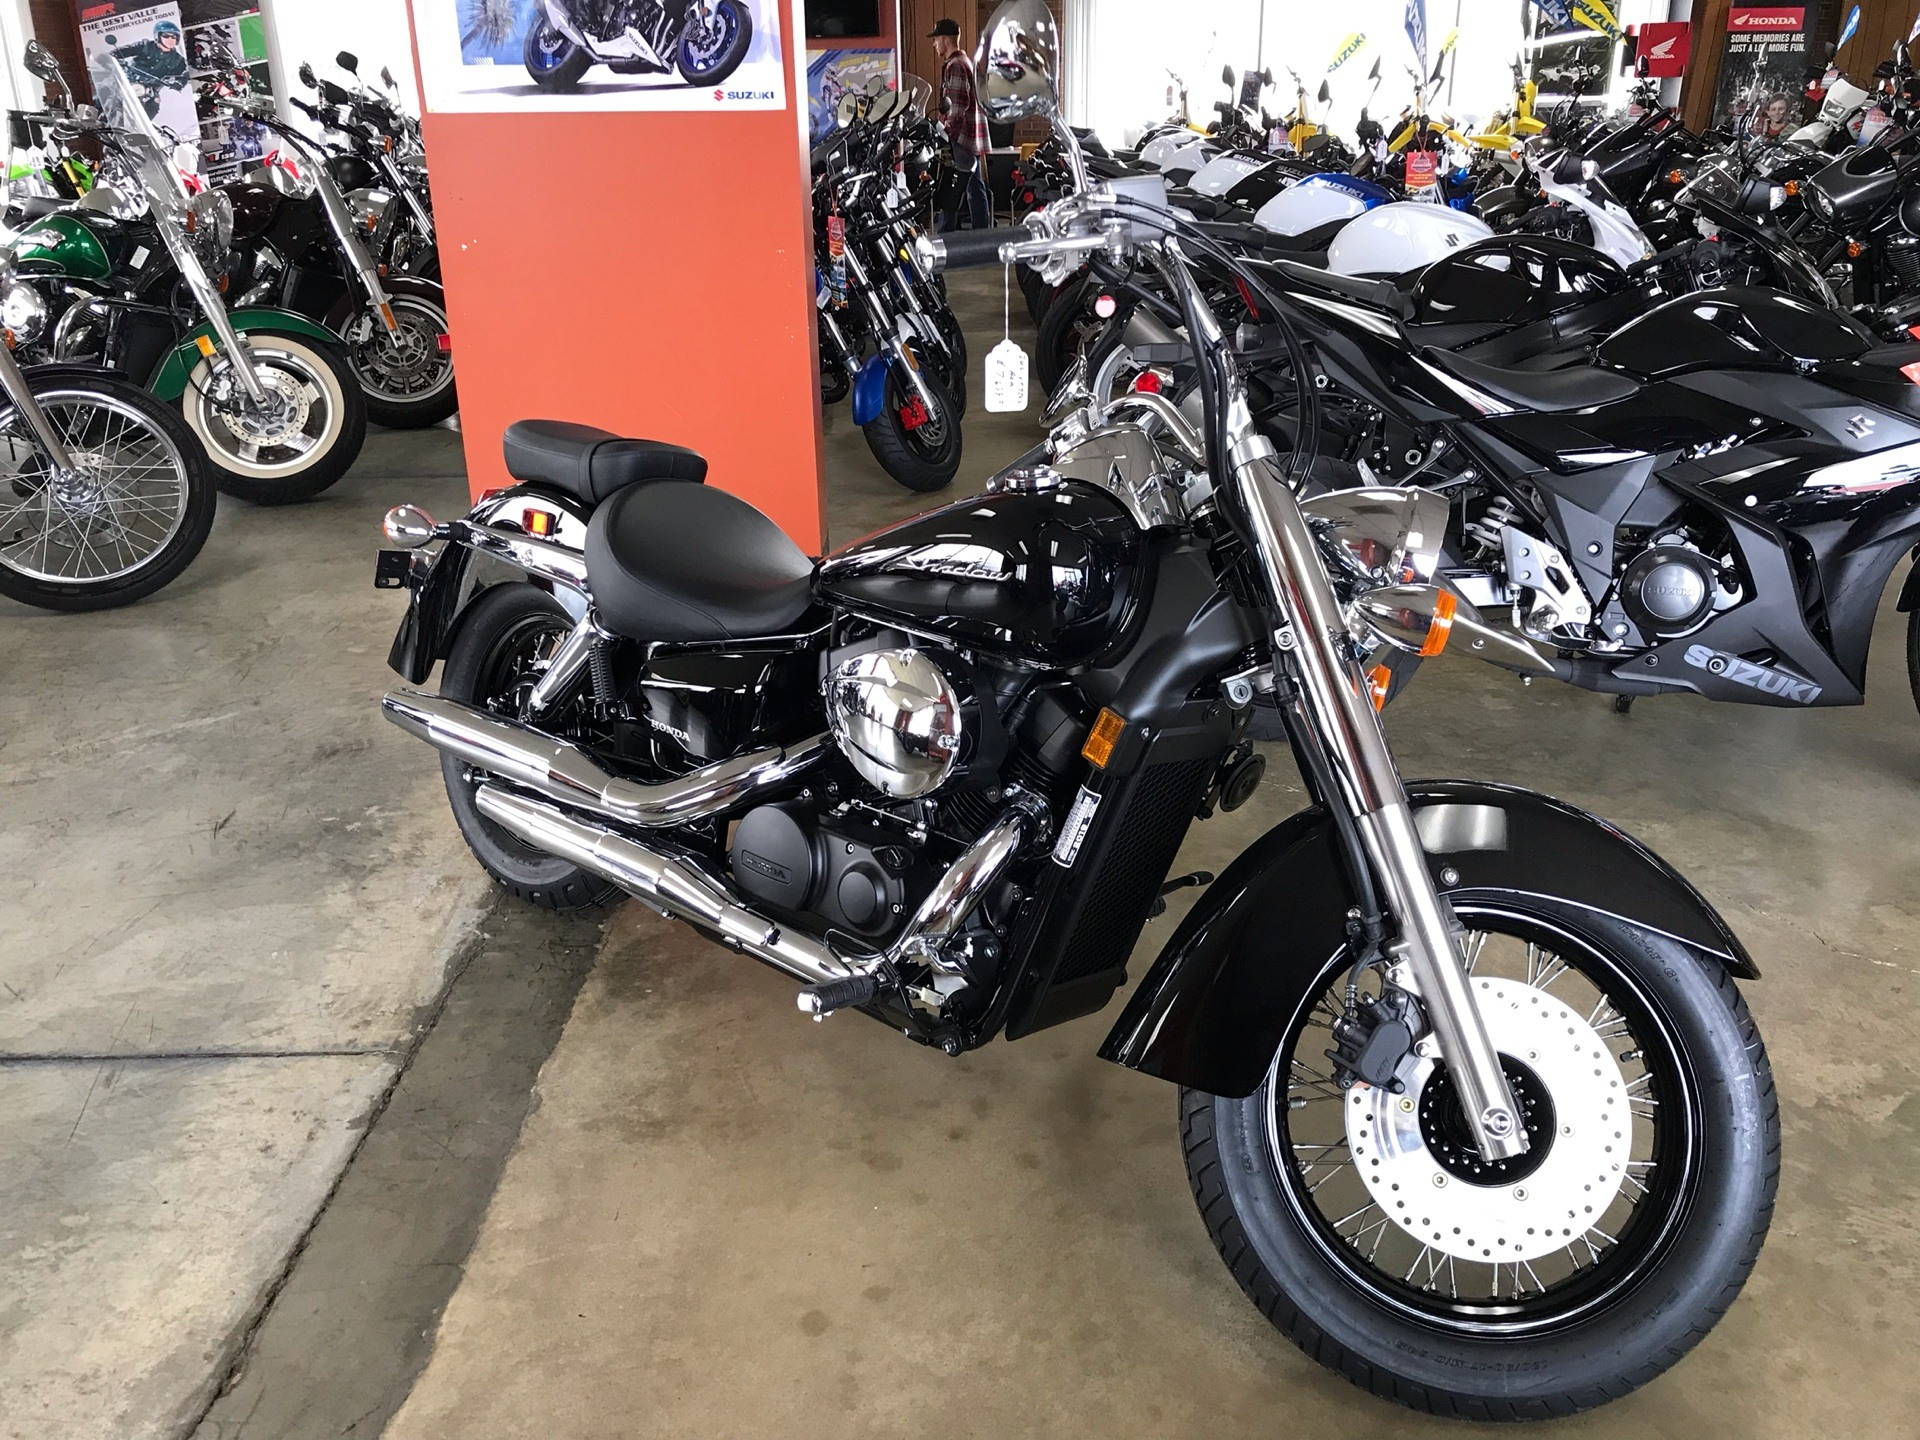 2019 Honda Shadow Aero 750 in Sanford, North Carolina - Photo 7